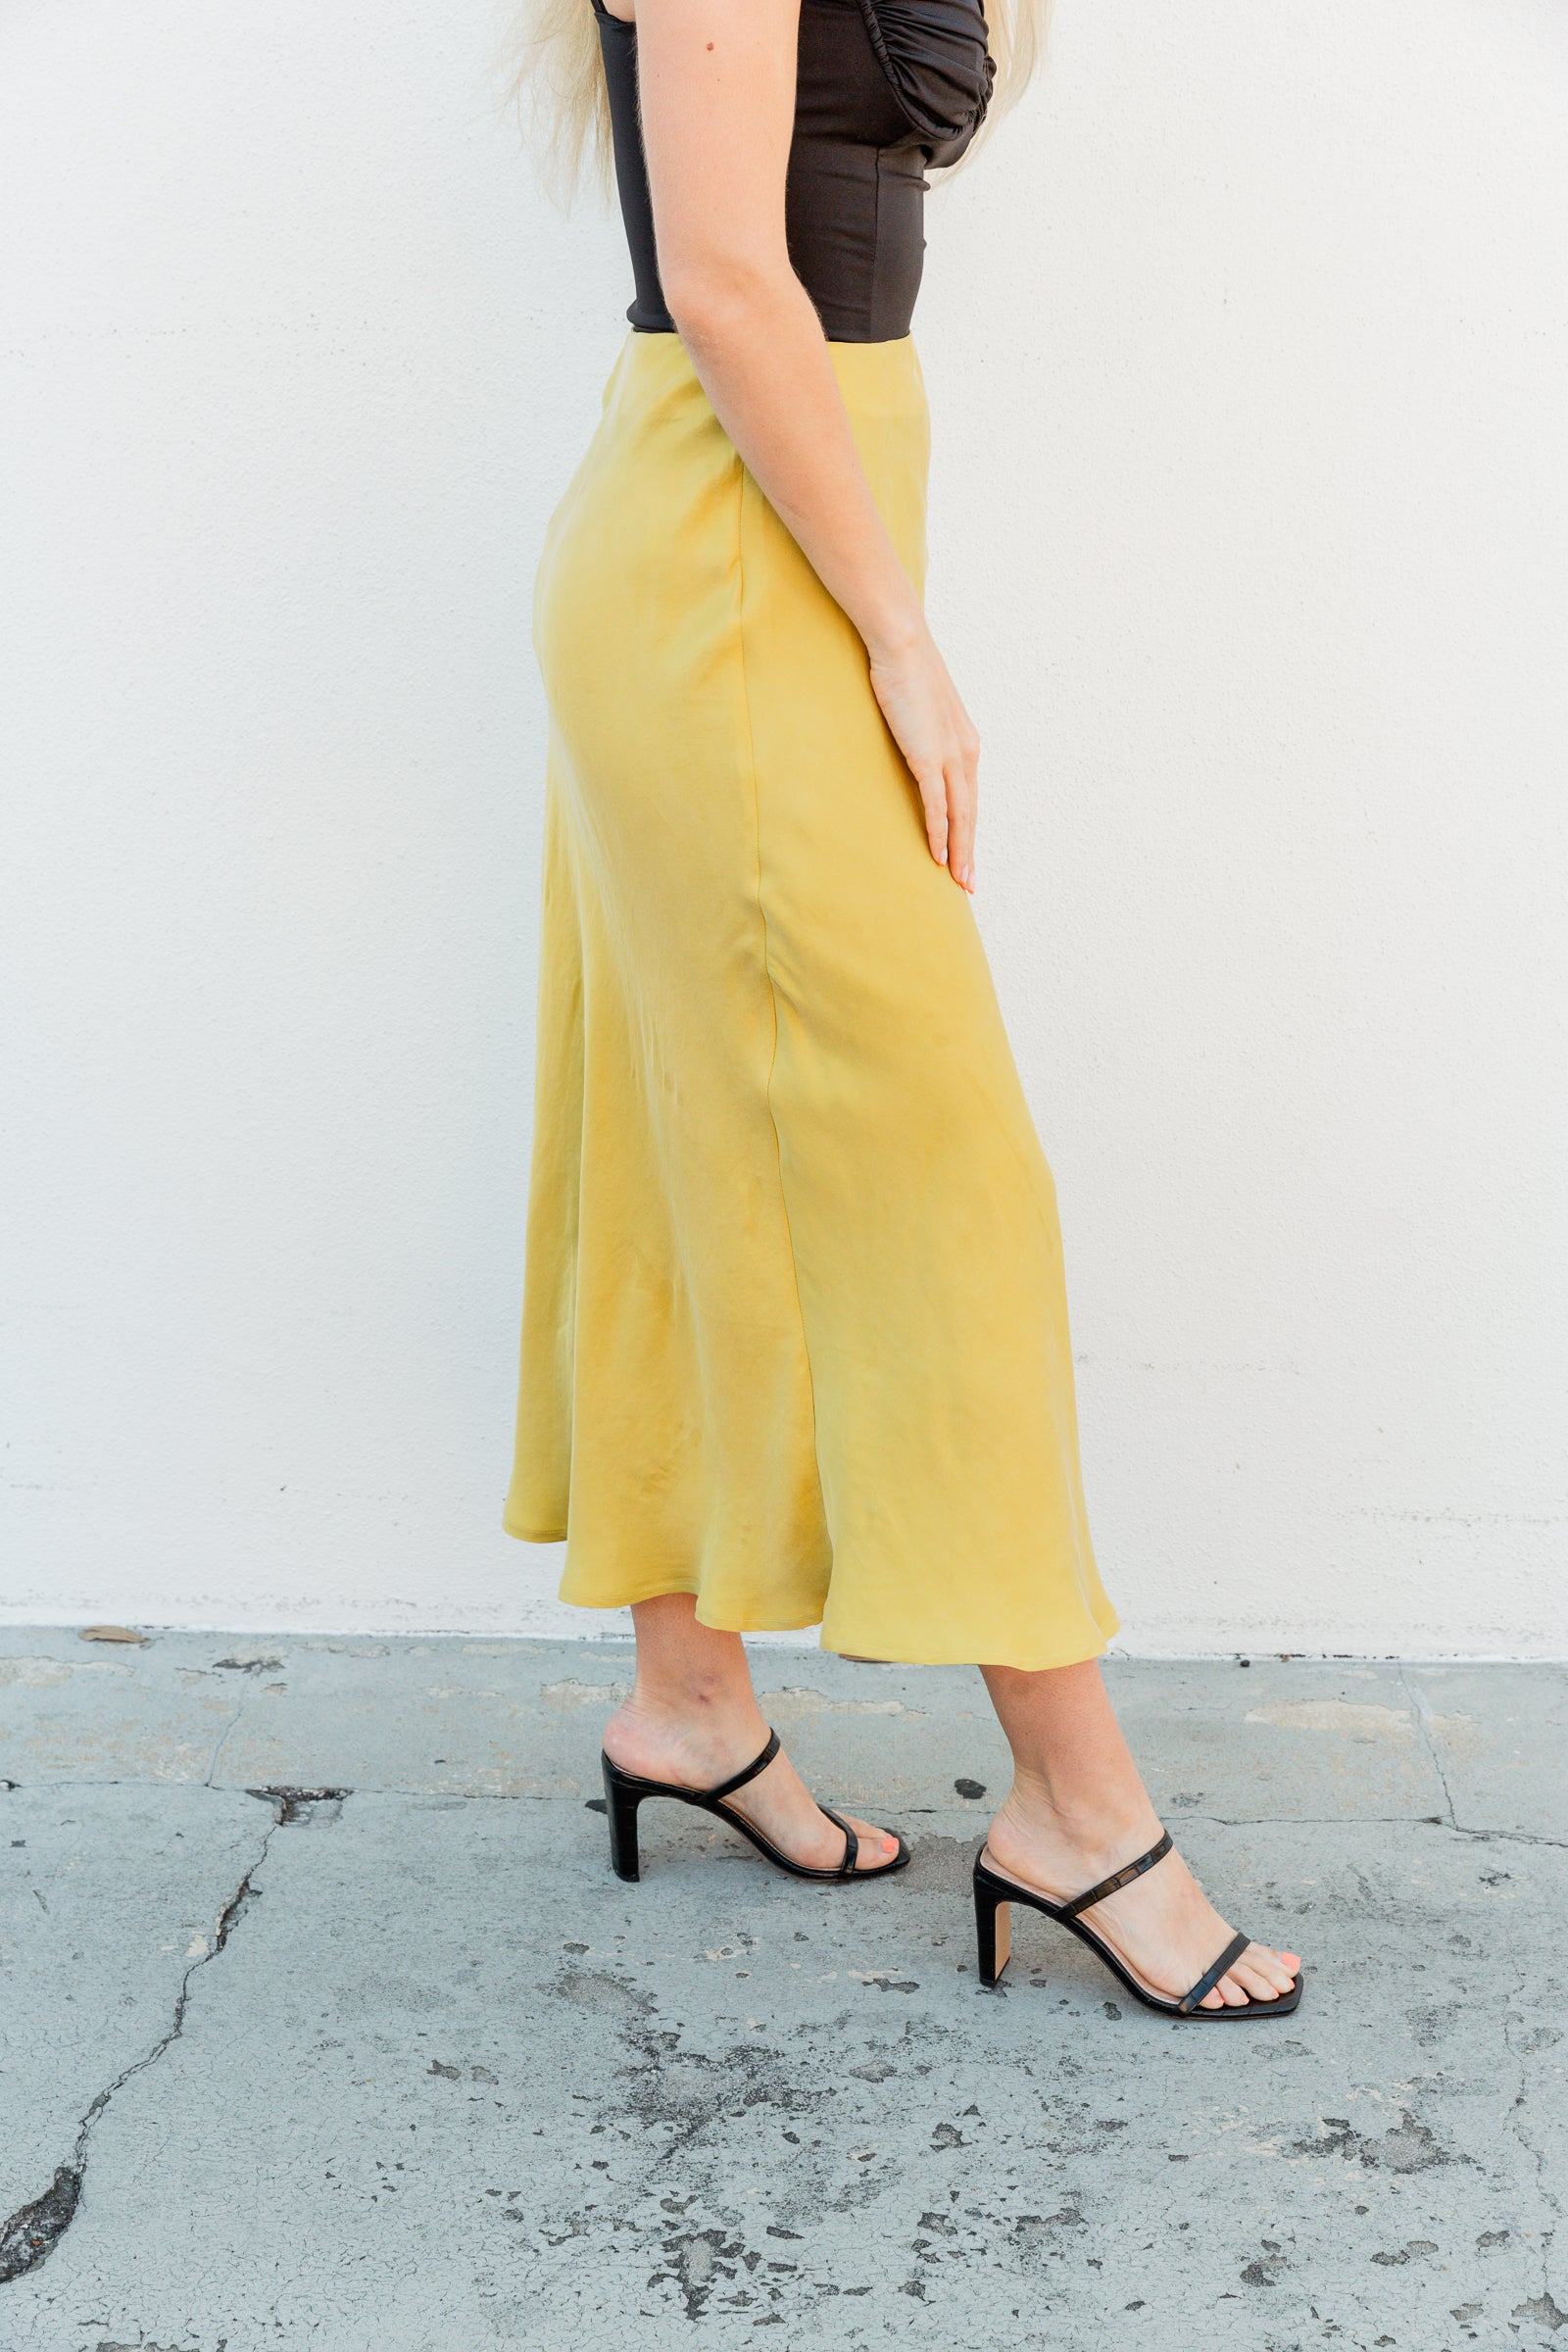 This satiny skirt has a fitted waistband that leads into a fitted then flowy skirt silhouette that meets mid-calf. This midi skirt features a zipper on the side of the skirt.